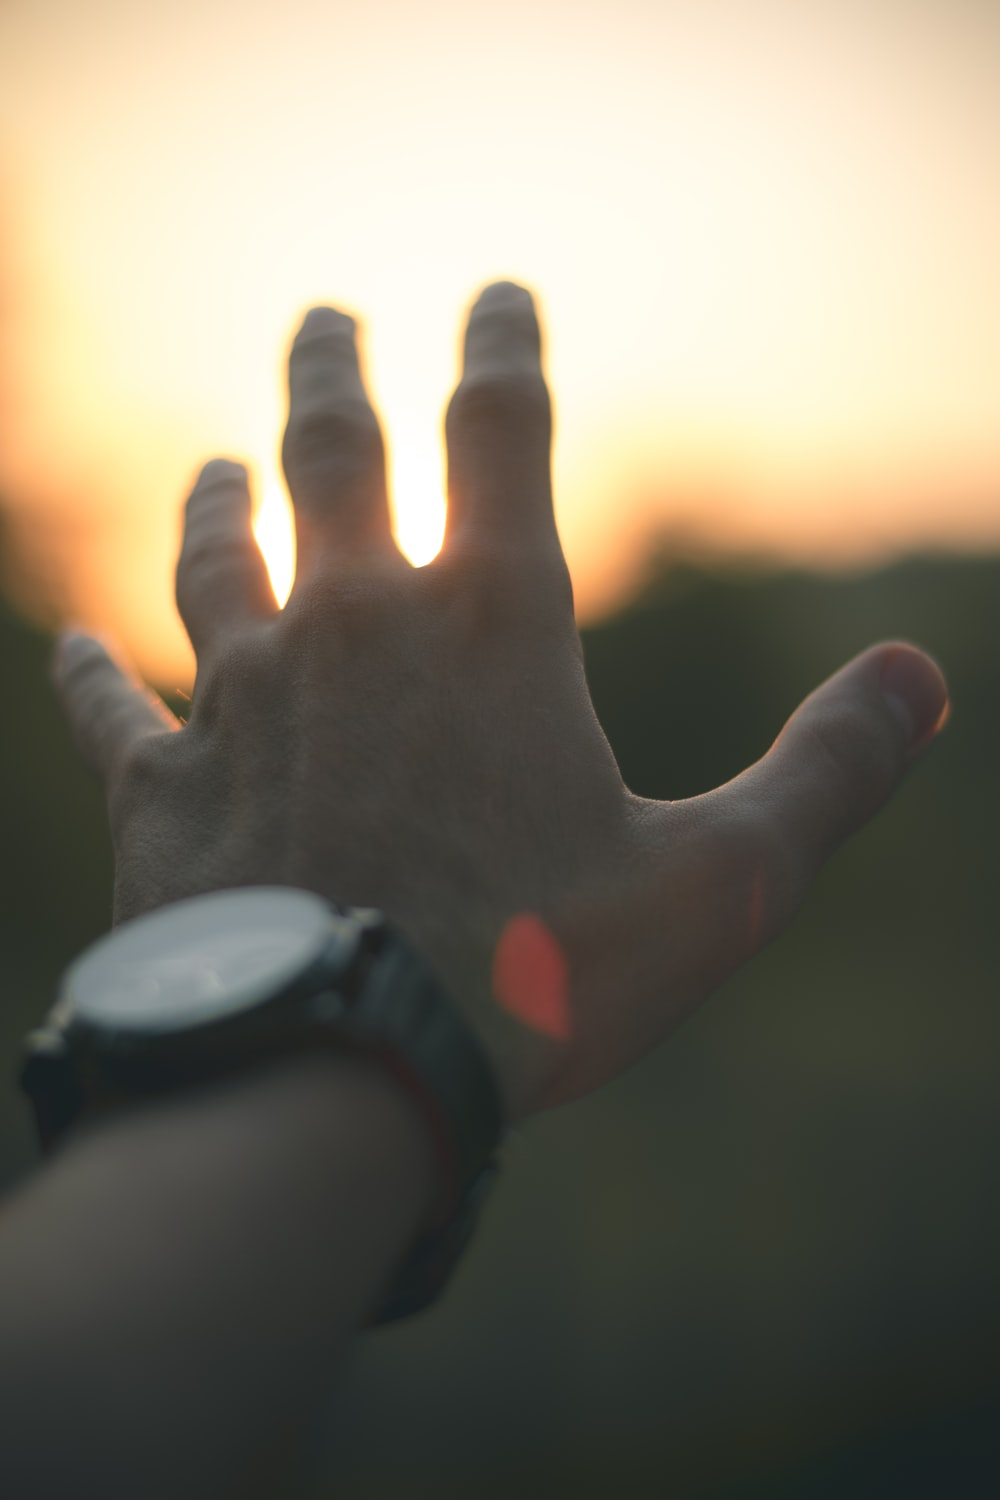 photo of person reaching out his hand